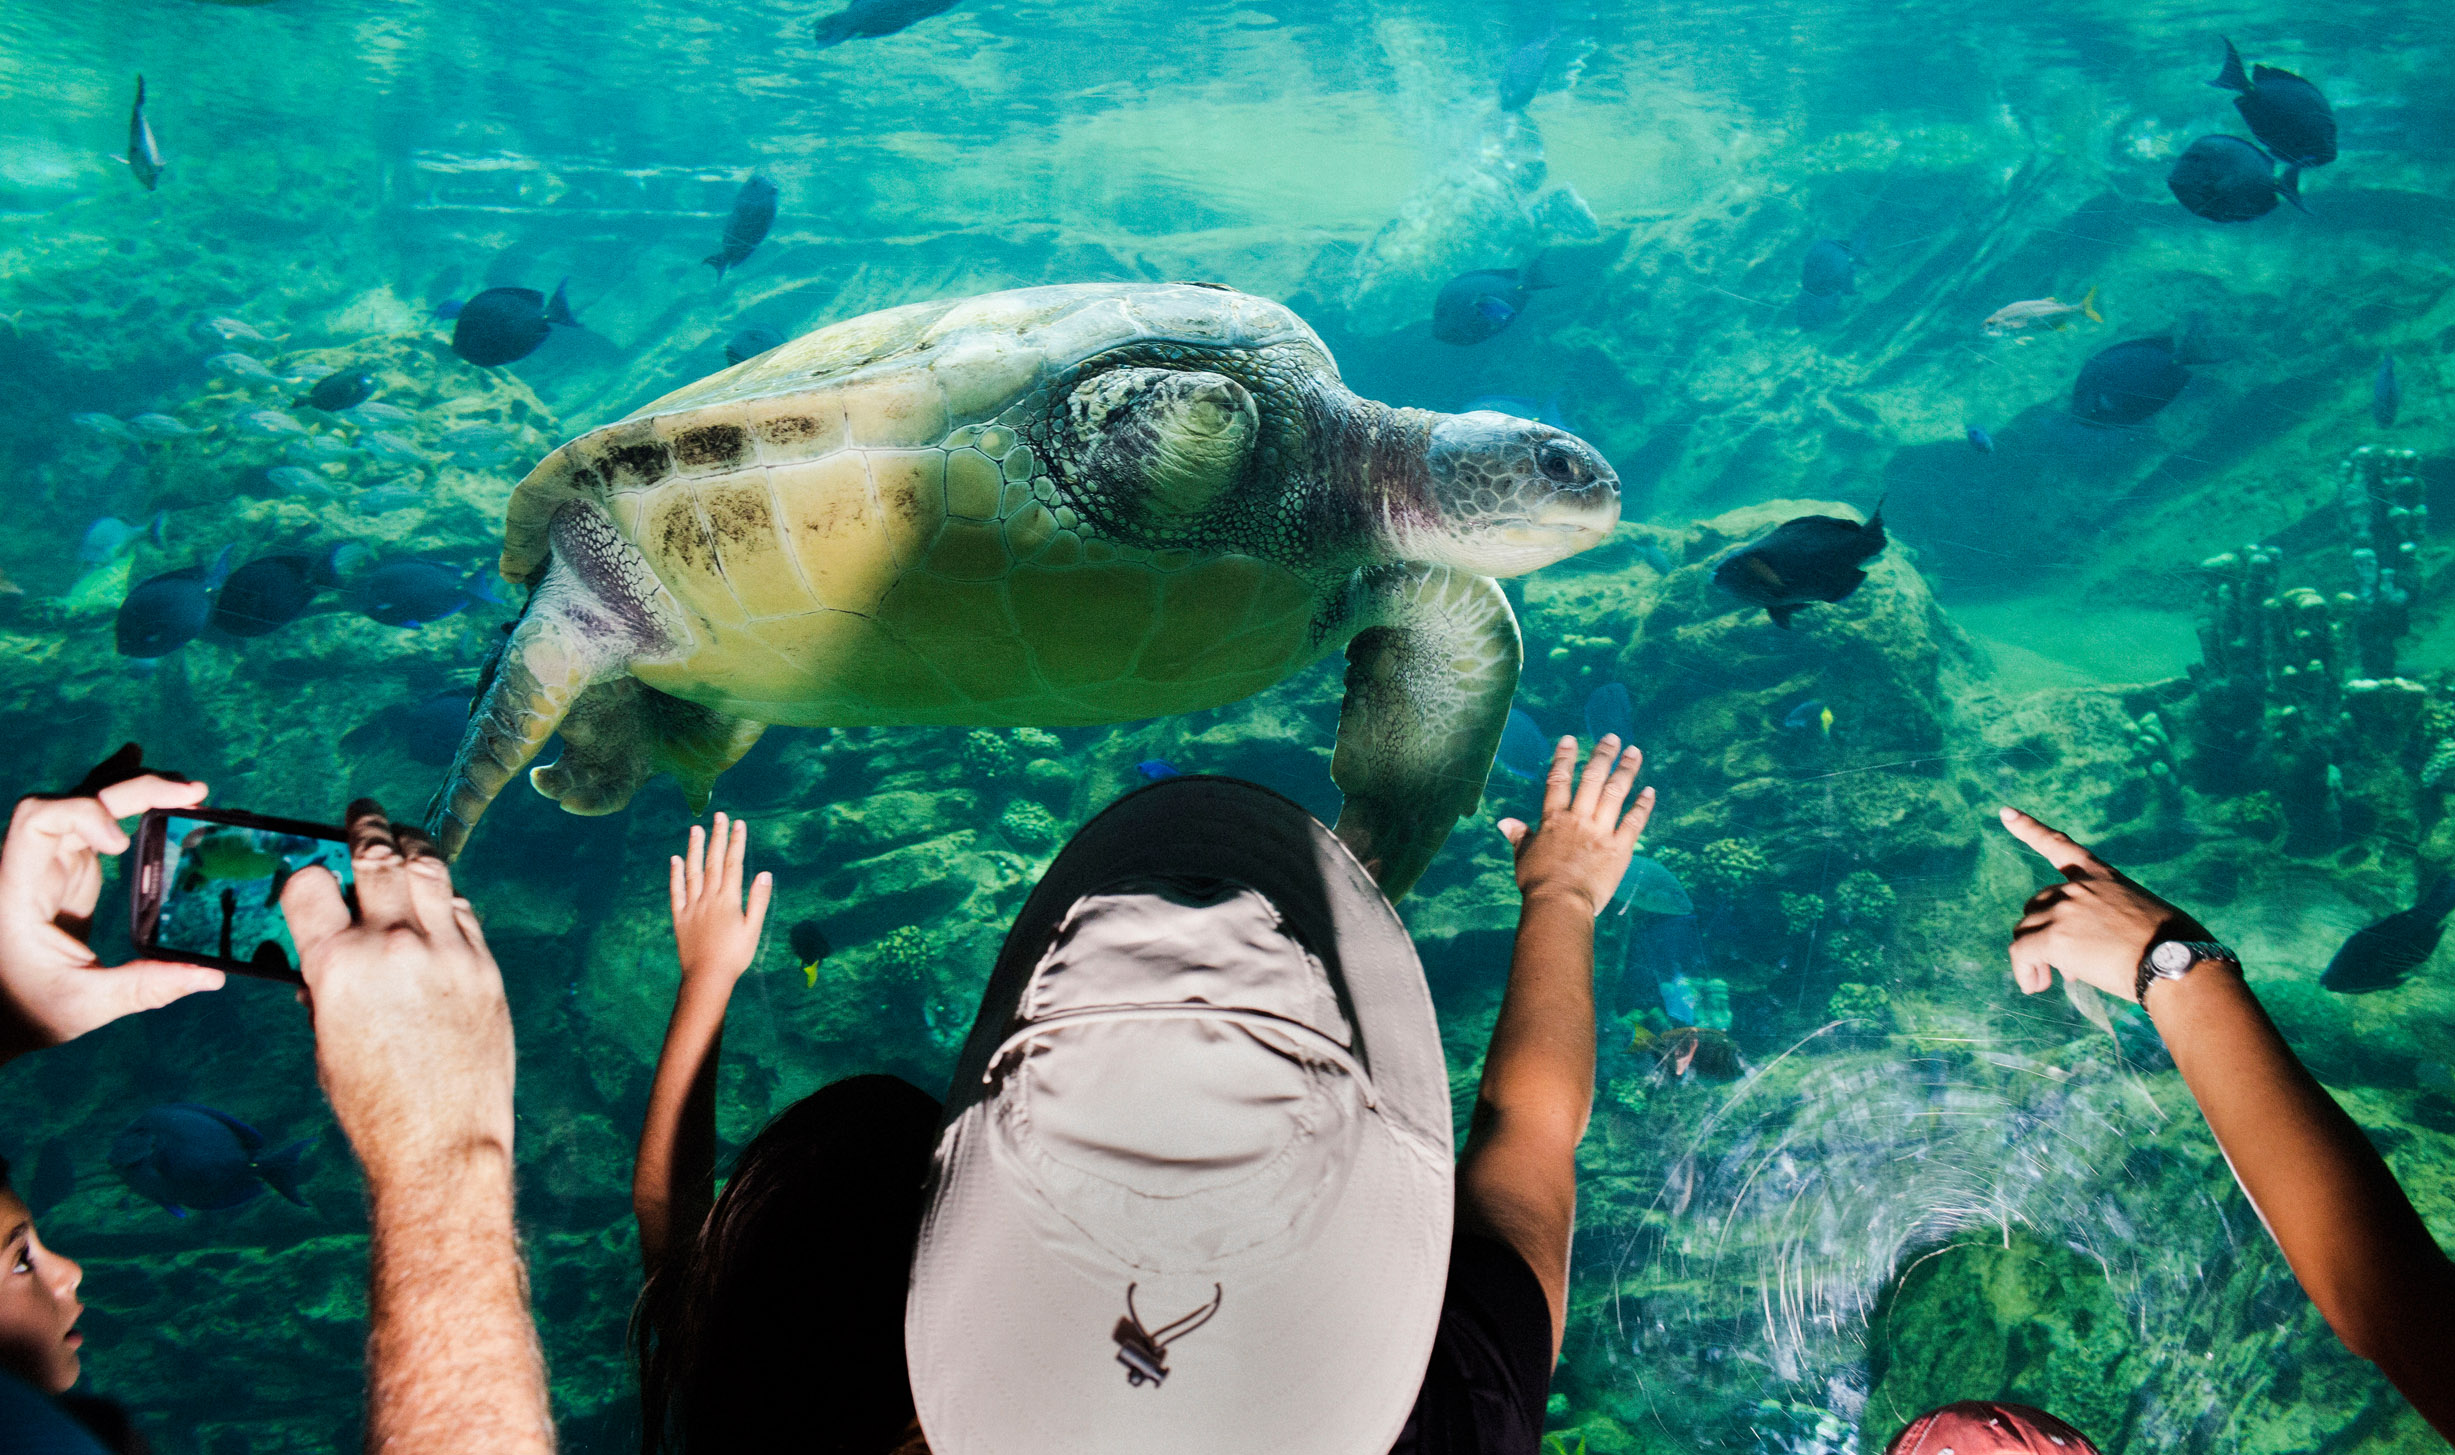 """Guests get up close to sea turtles at """"TurtleTrek,"""" an attraction that educates visitors on the species' plight in the wild."""